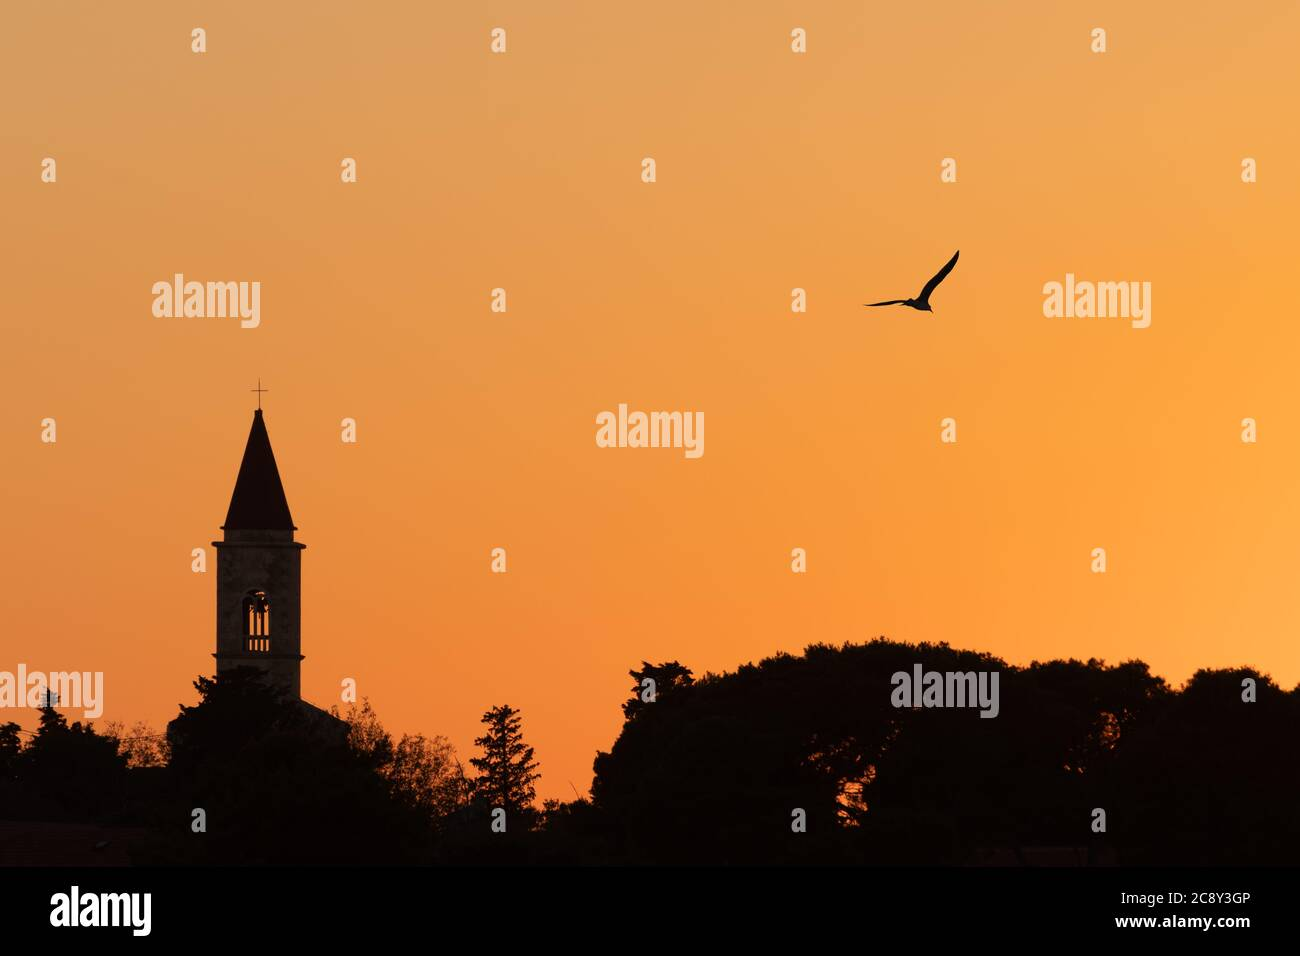 Silhouette of christian church on Croatian island Ugljan and seagull flying in bright orange sunset sky. Religion, faith, hope, travel and tourism Stock Photo